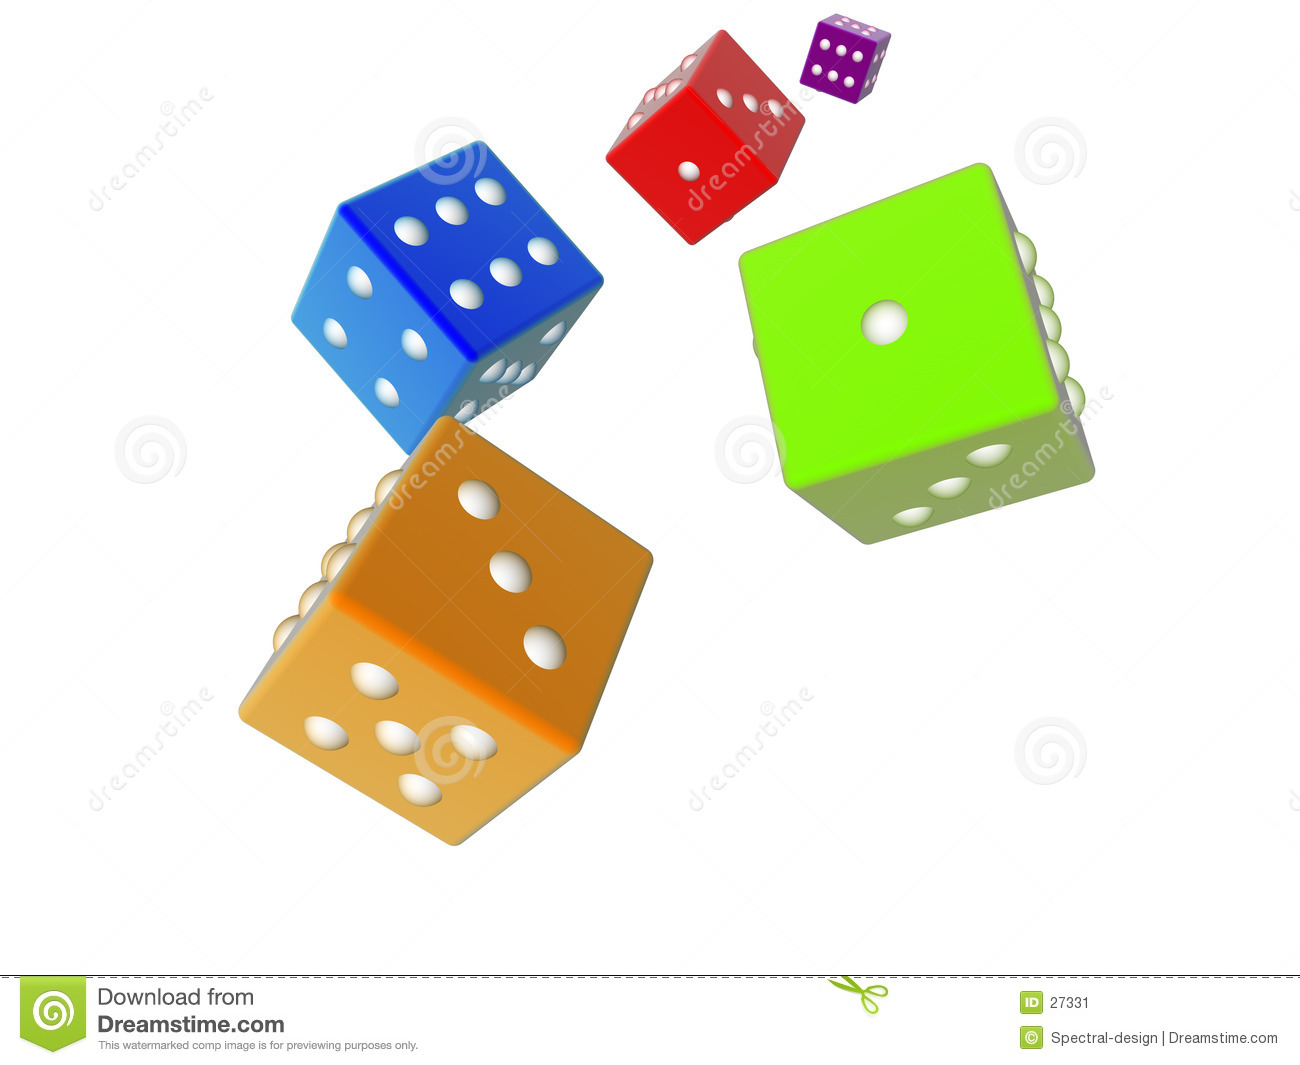 3D dices - colored